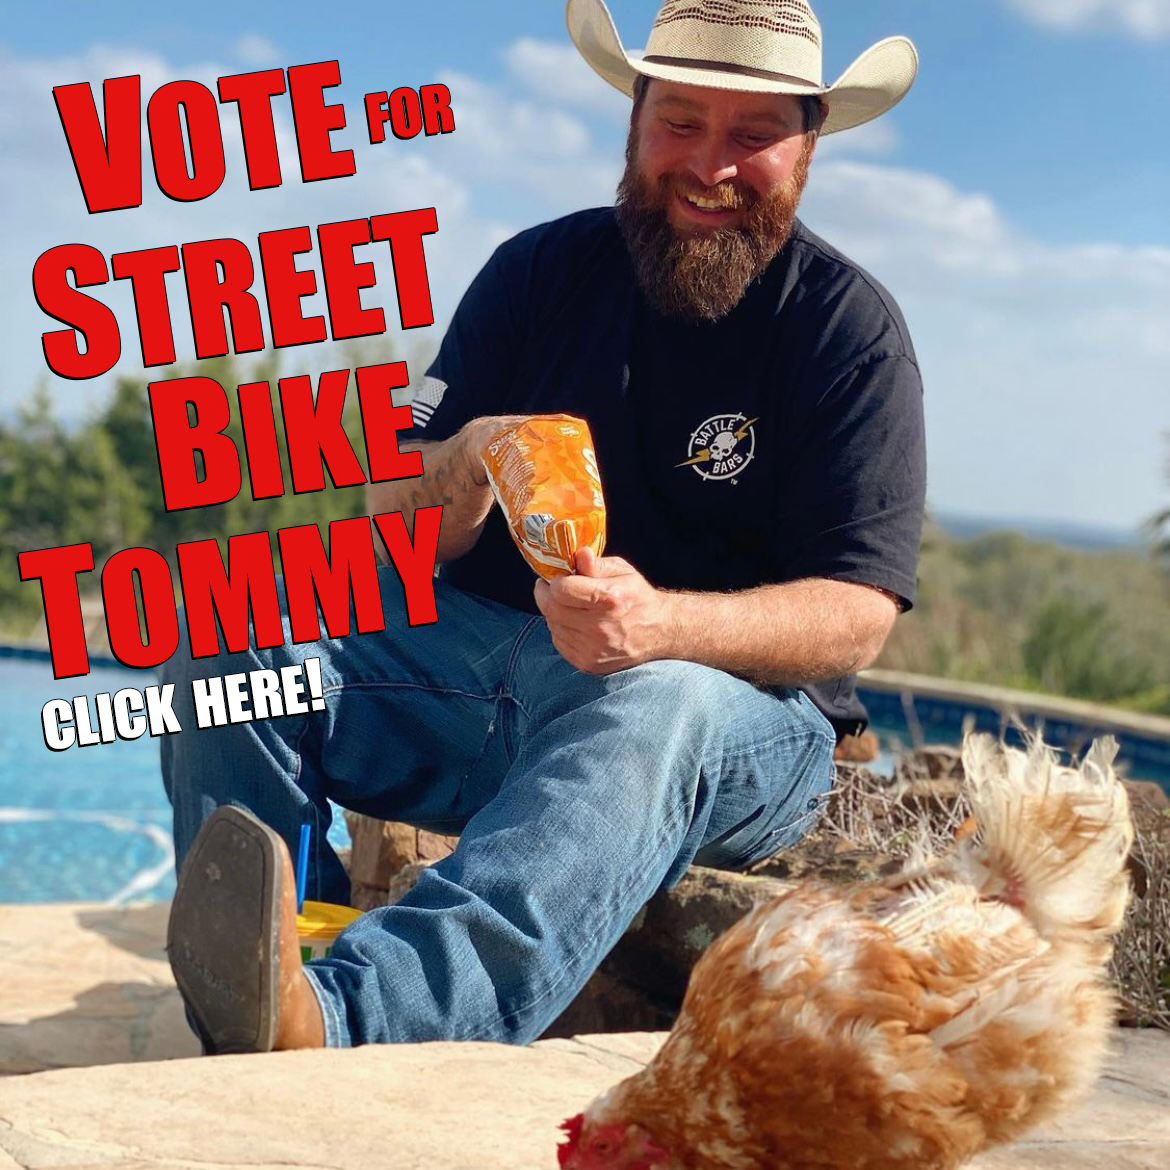 vote-for-street-bike-tommy.png